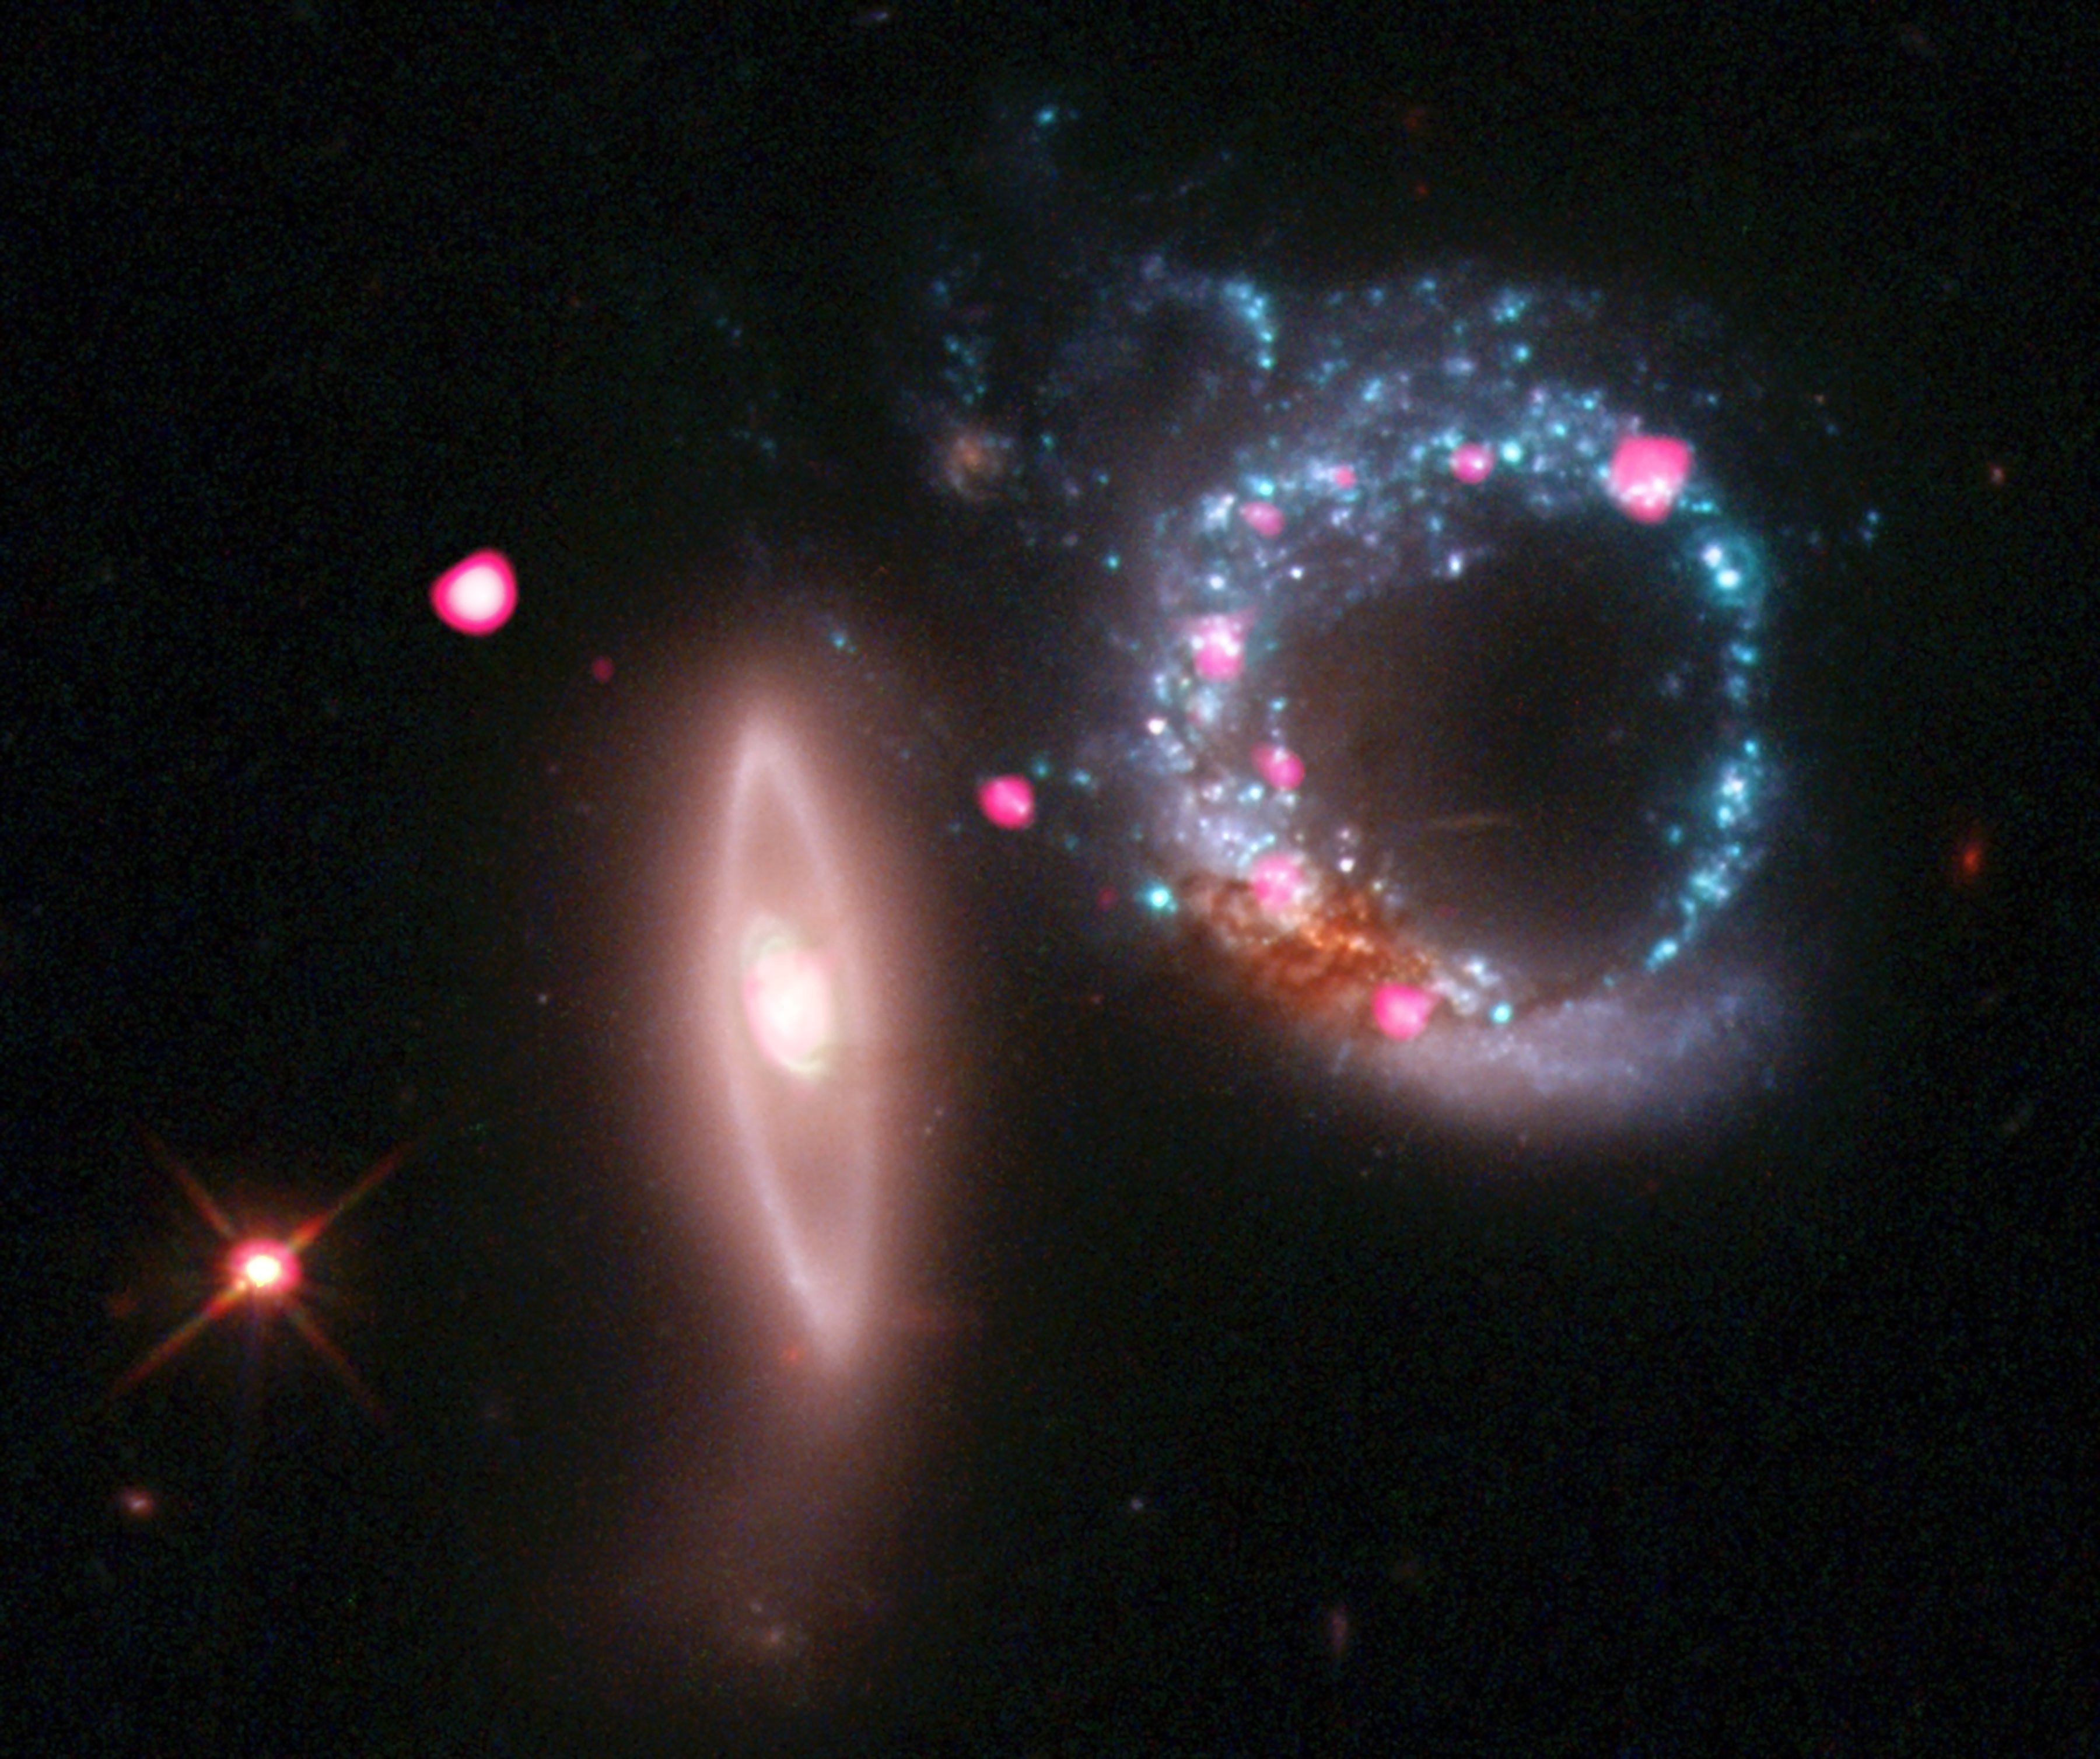 black hole chandra x ray - photo #10